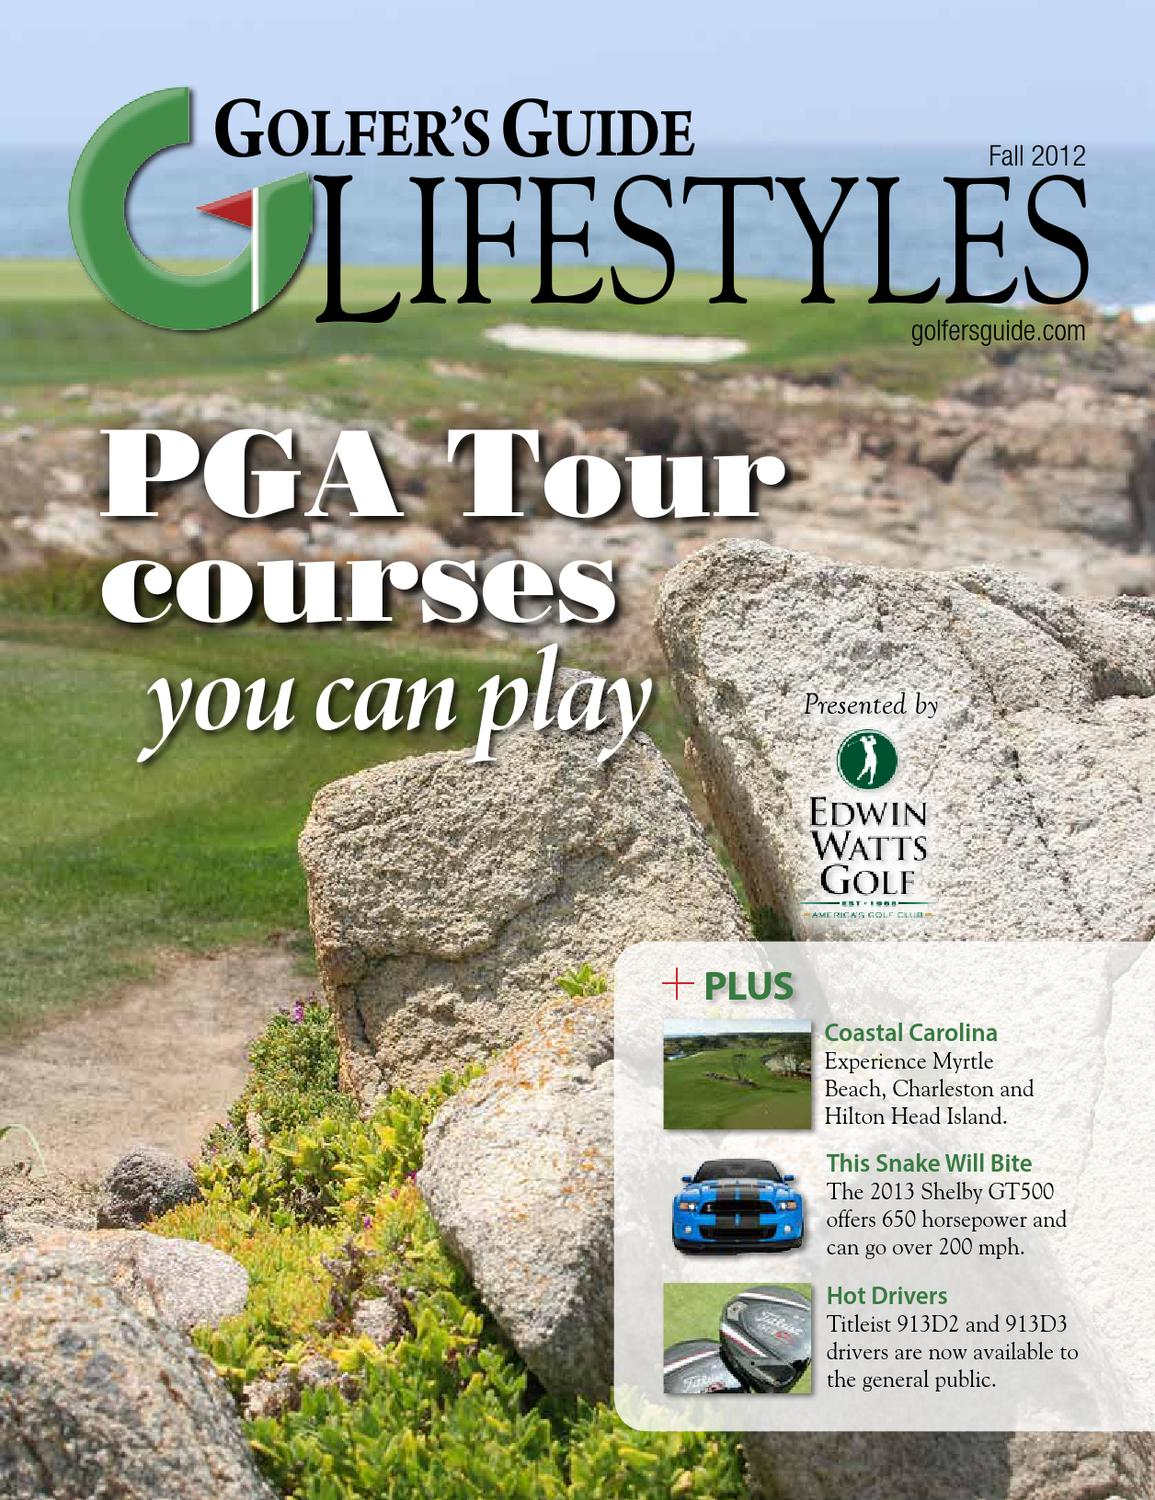 Golfer's Guide Lifestyles Fall 2012 by Golfers Guide